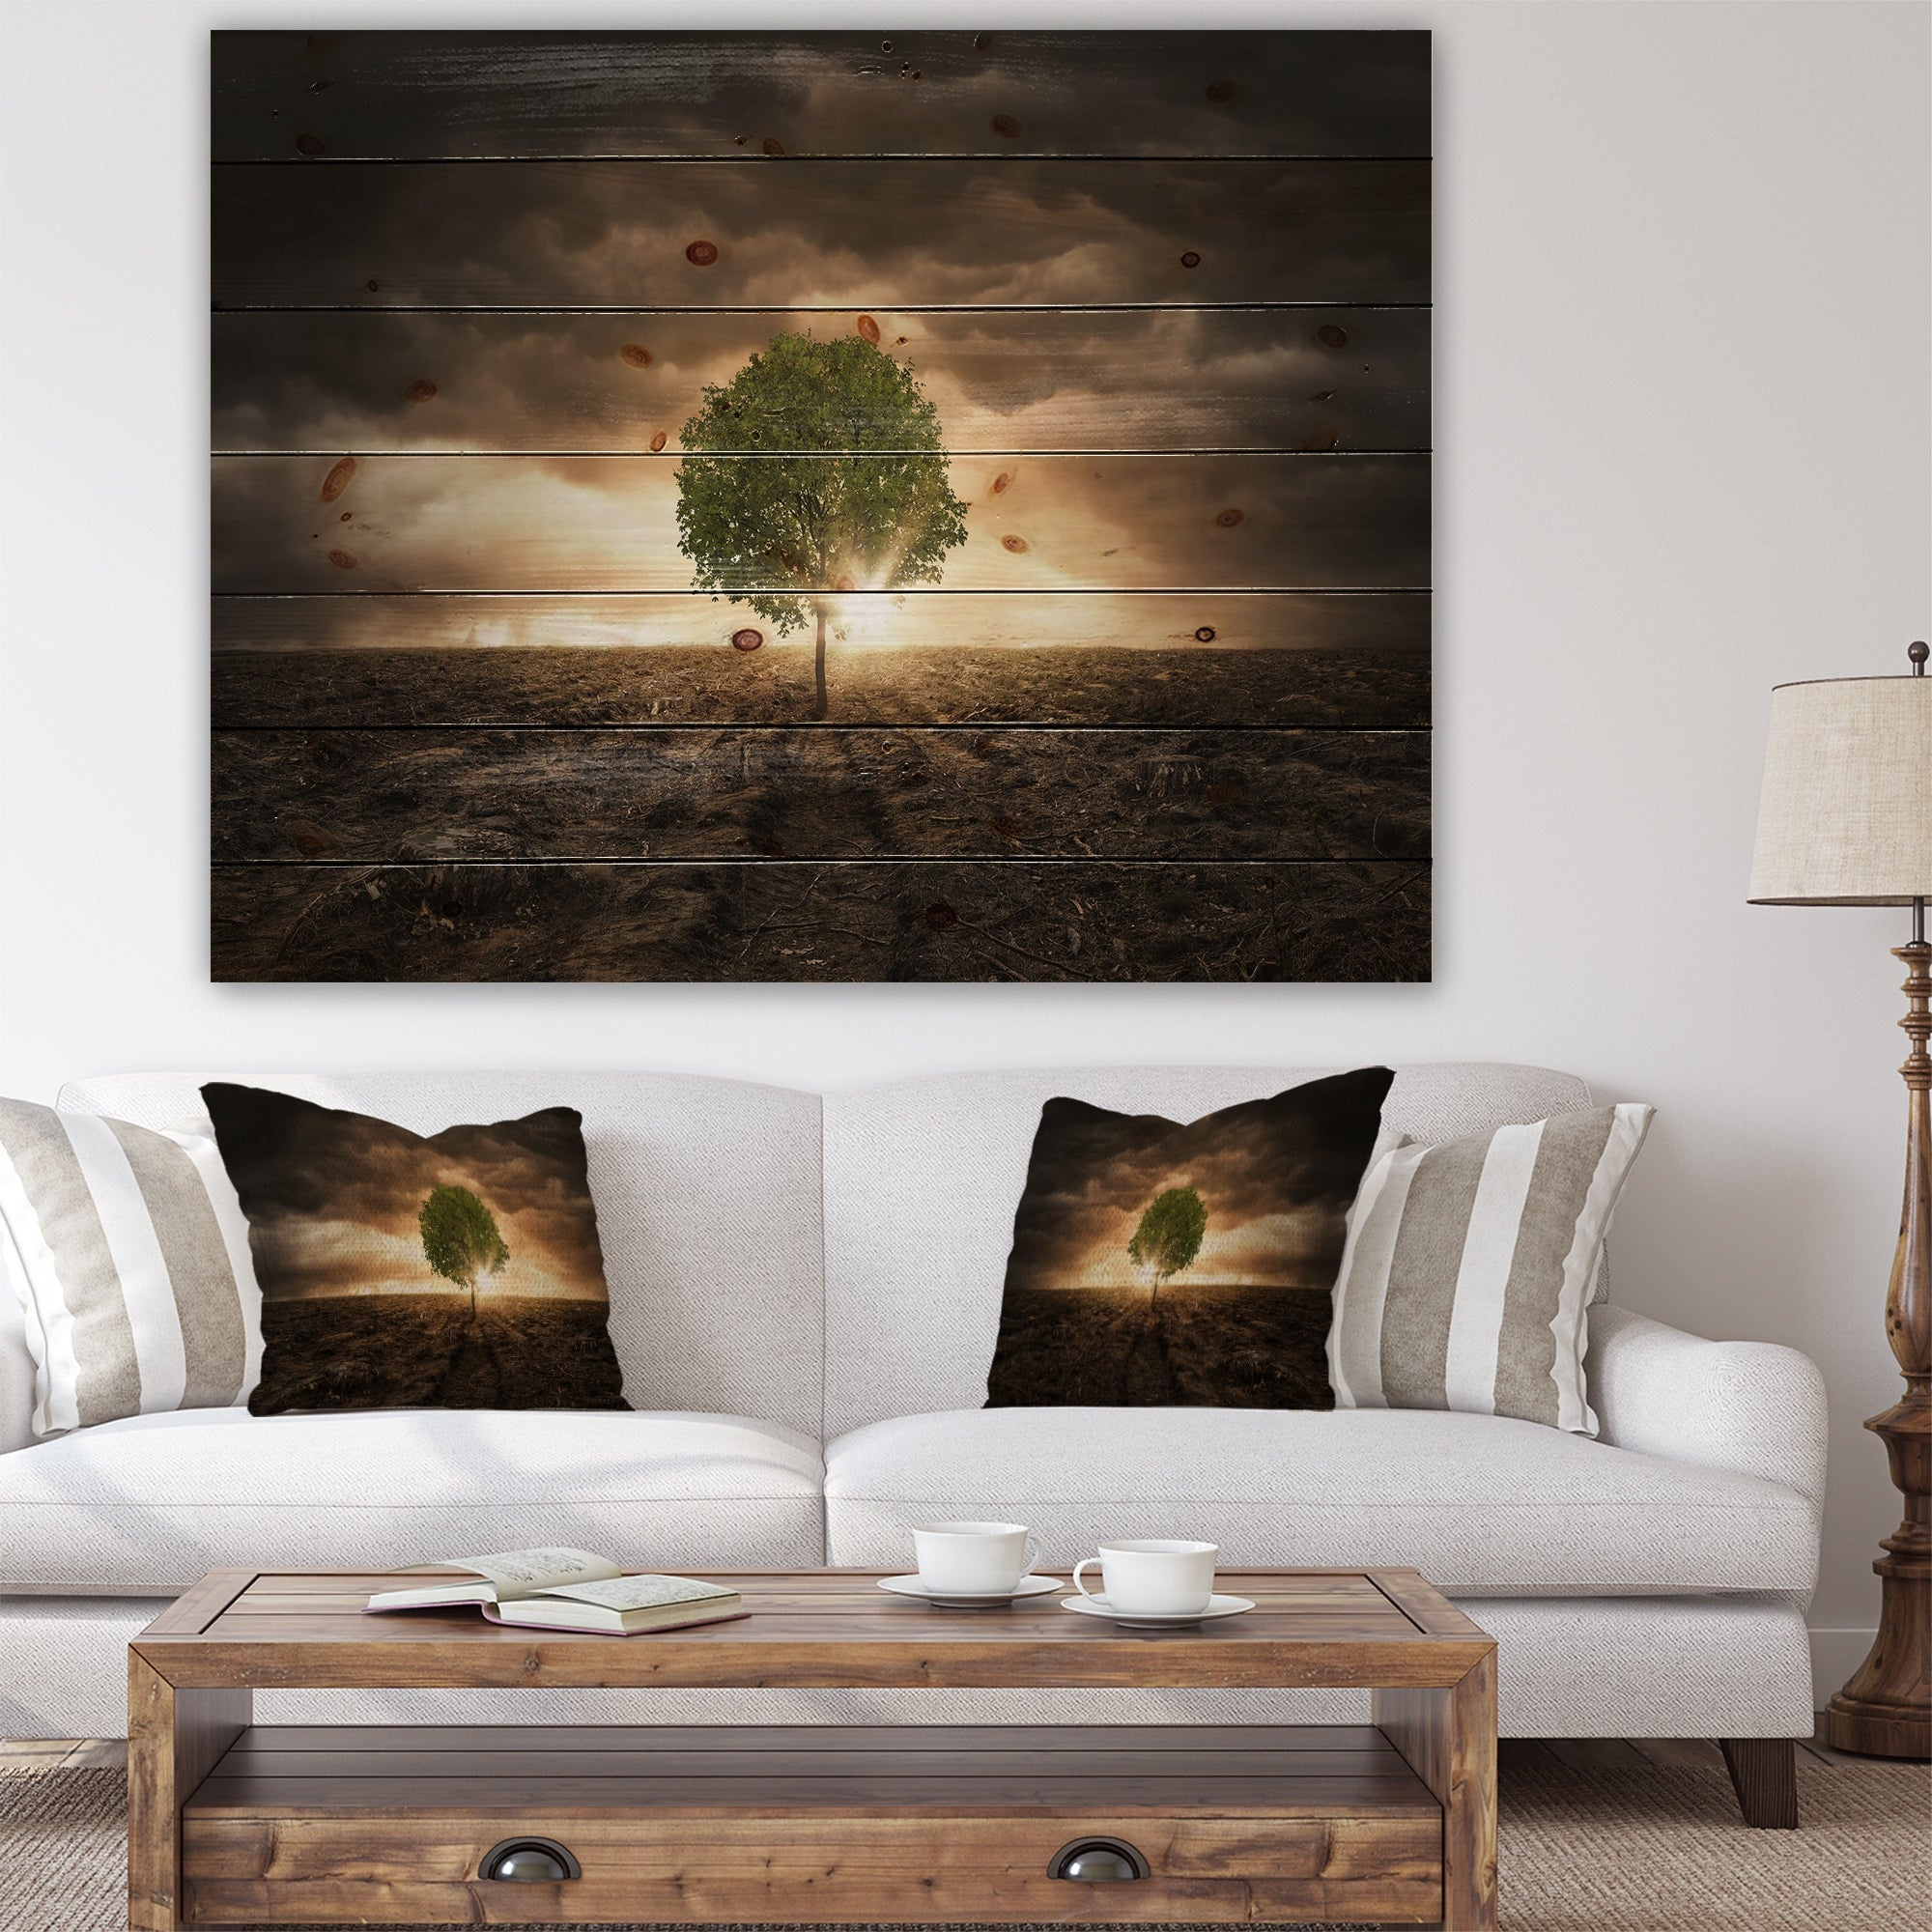 Designart Lonely Tree Under Dramatic Sky Wall Art Landscape Print On Natural Pine Wood Multi Color Overstock 23107418